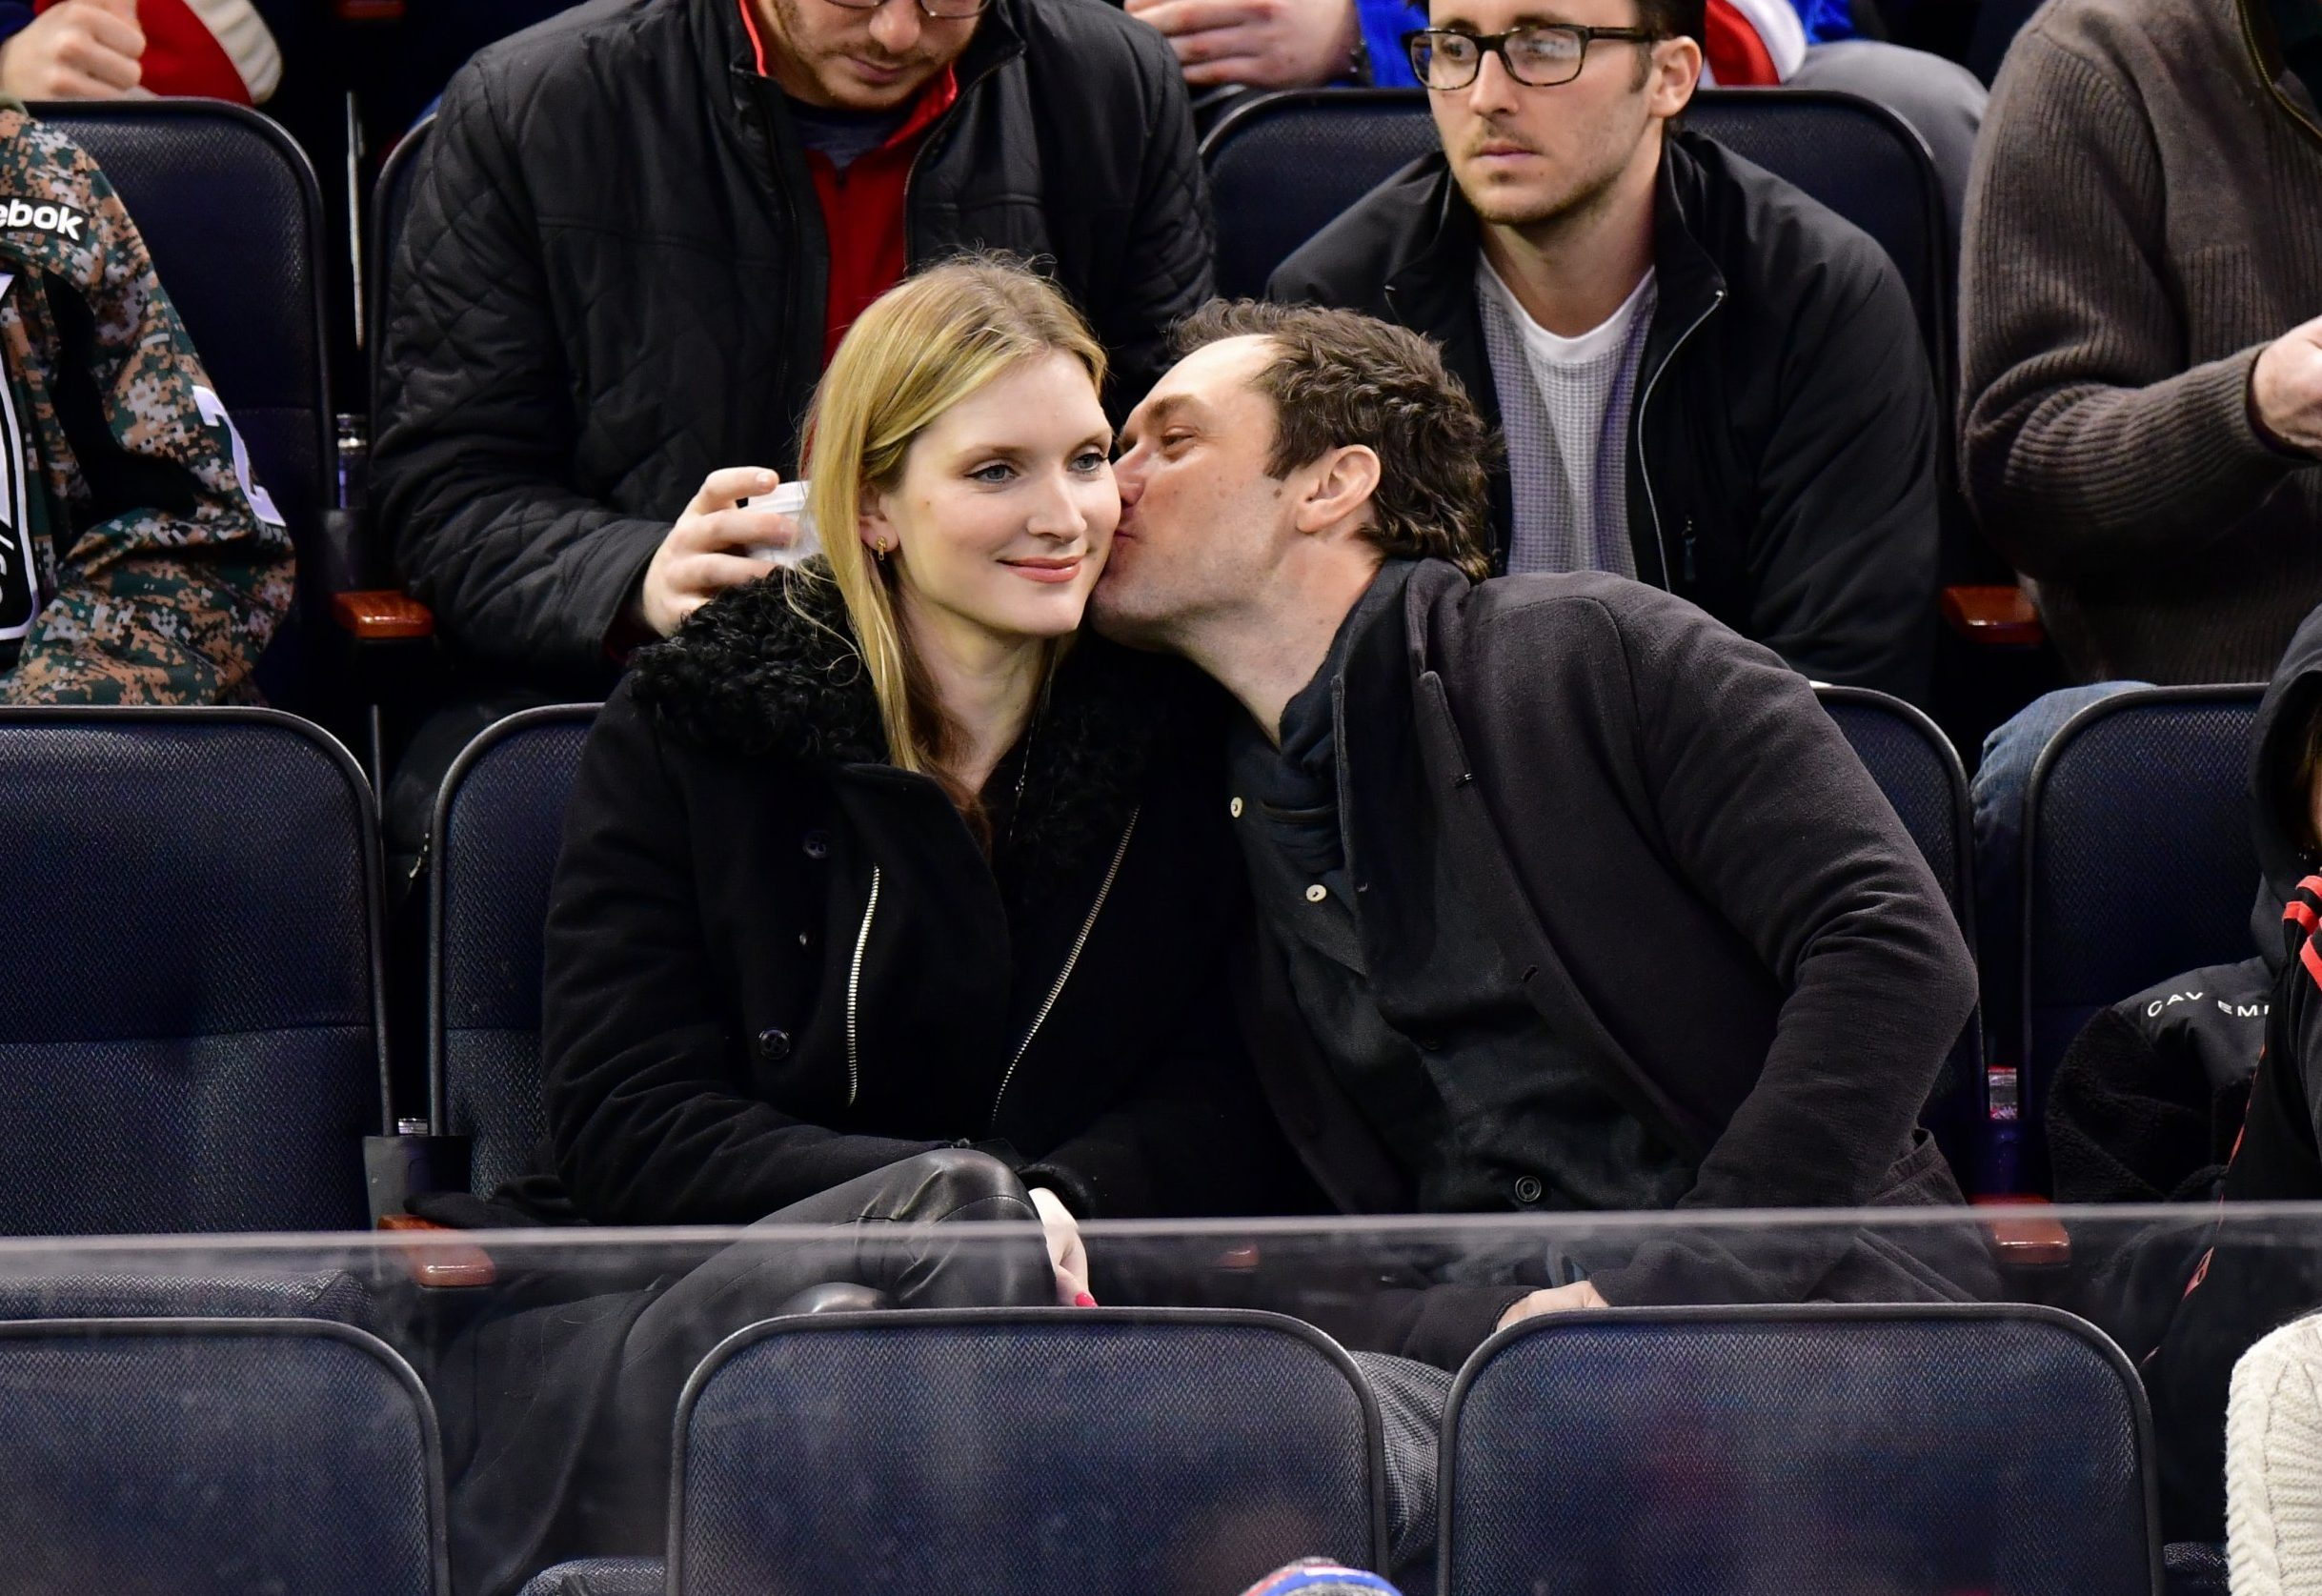 Jude Law 'to marry psychologist girlfriend Phillipa Coan in star-studded French wedding'